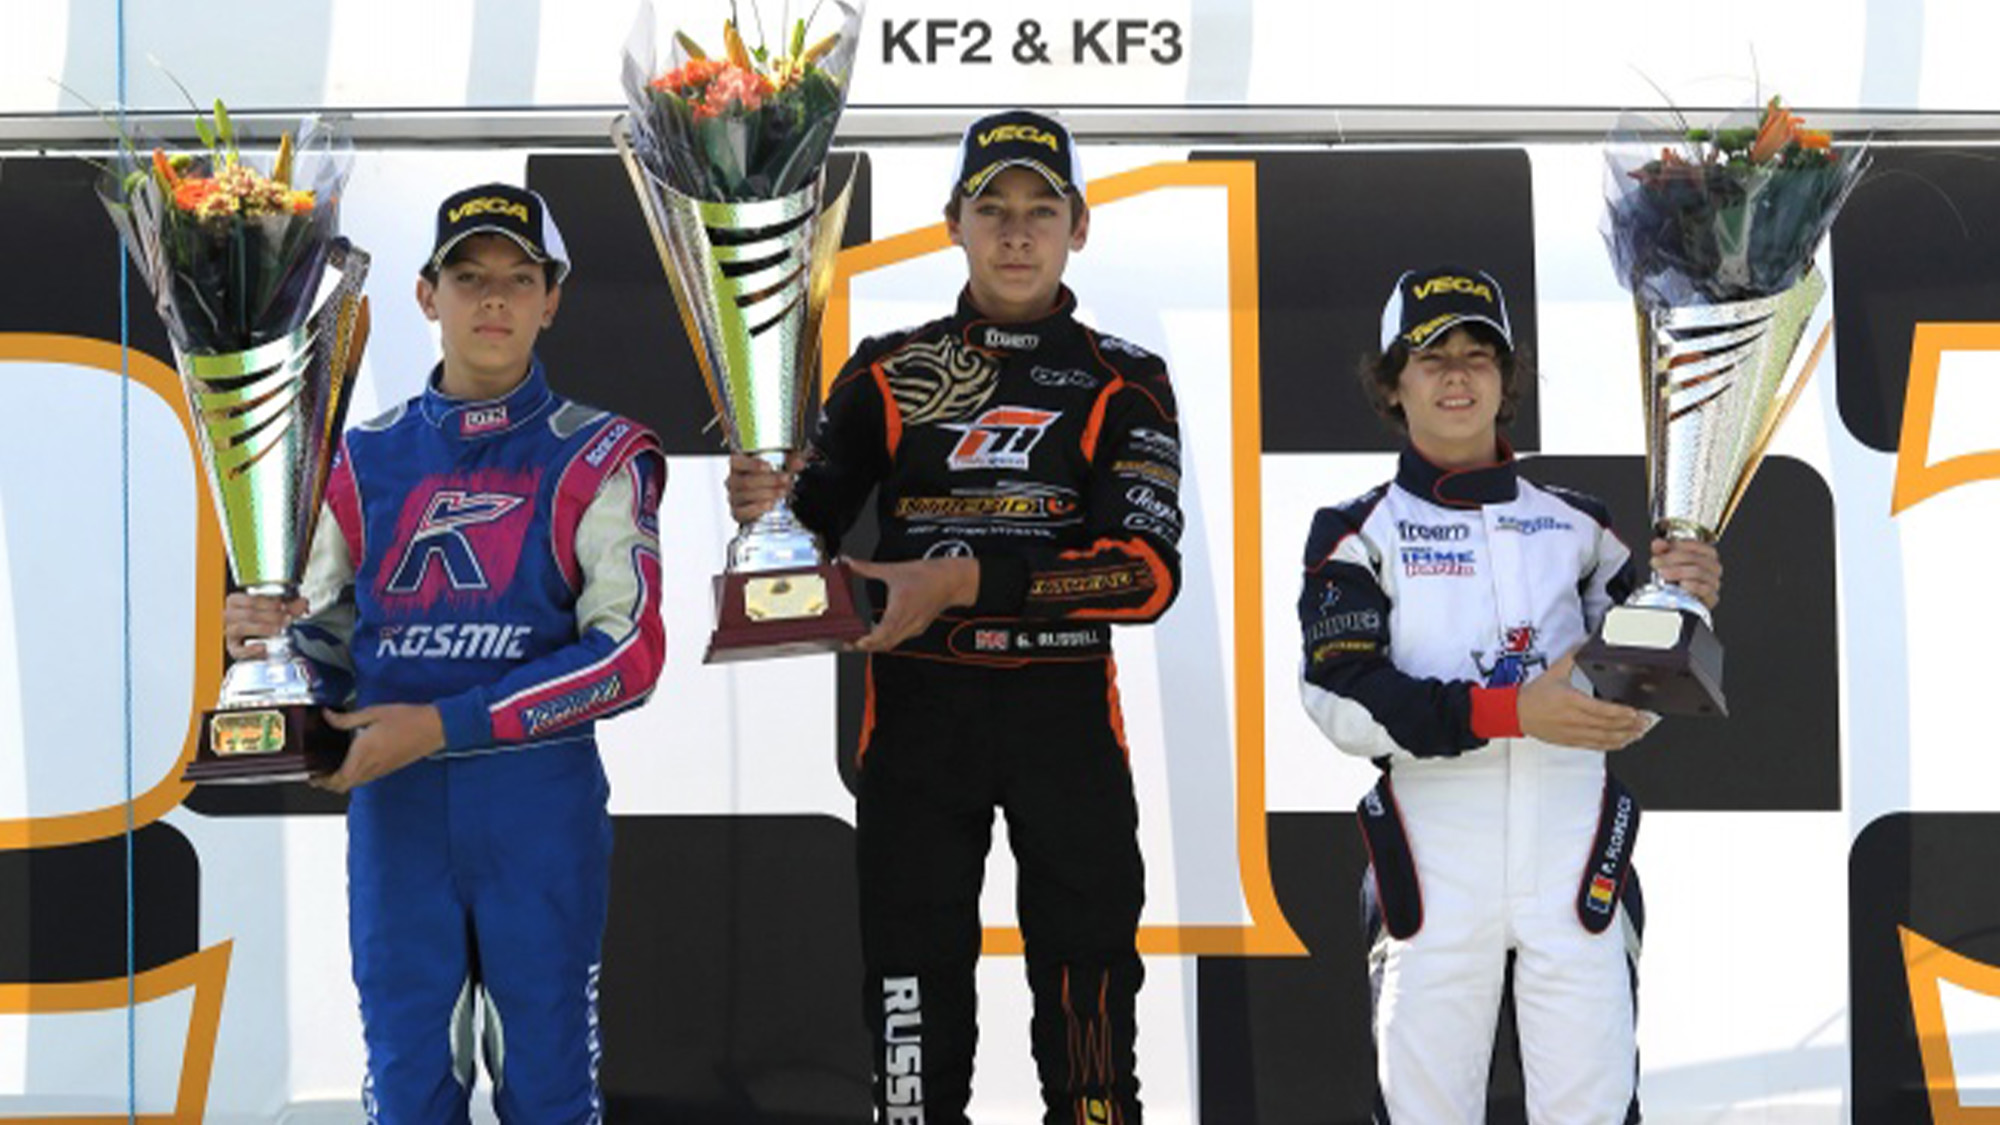 Luca Corberi alongside European Championship race winner George Russell and Petru Gabriel Florescu on the podium at the PF karting circuit in Grantham in 2012